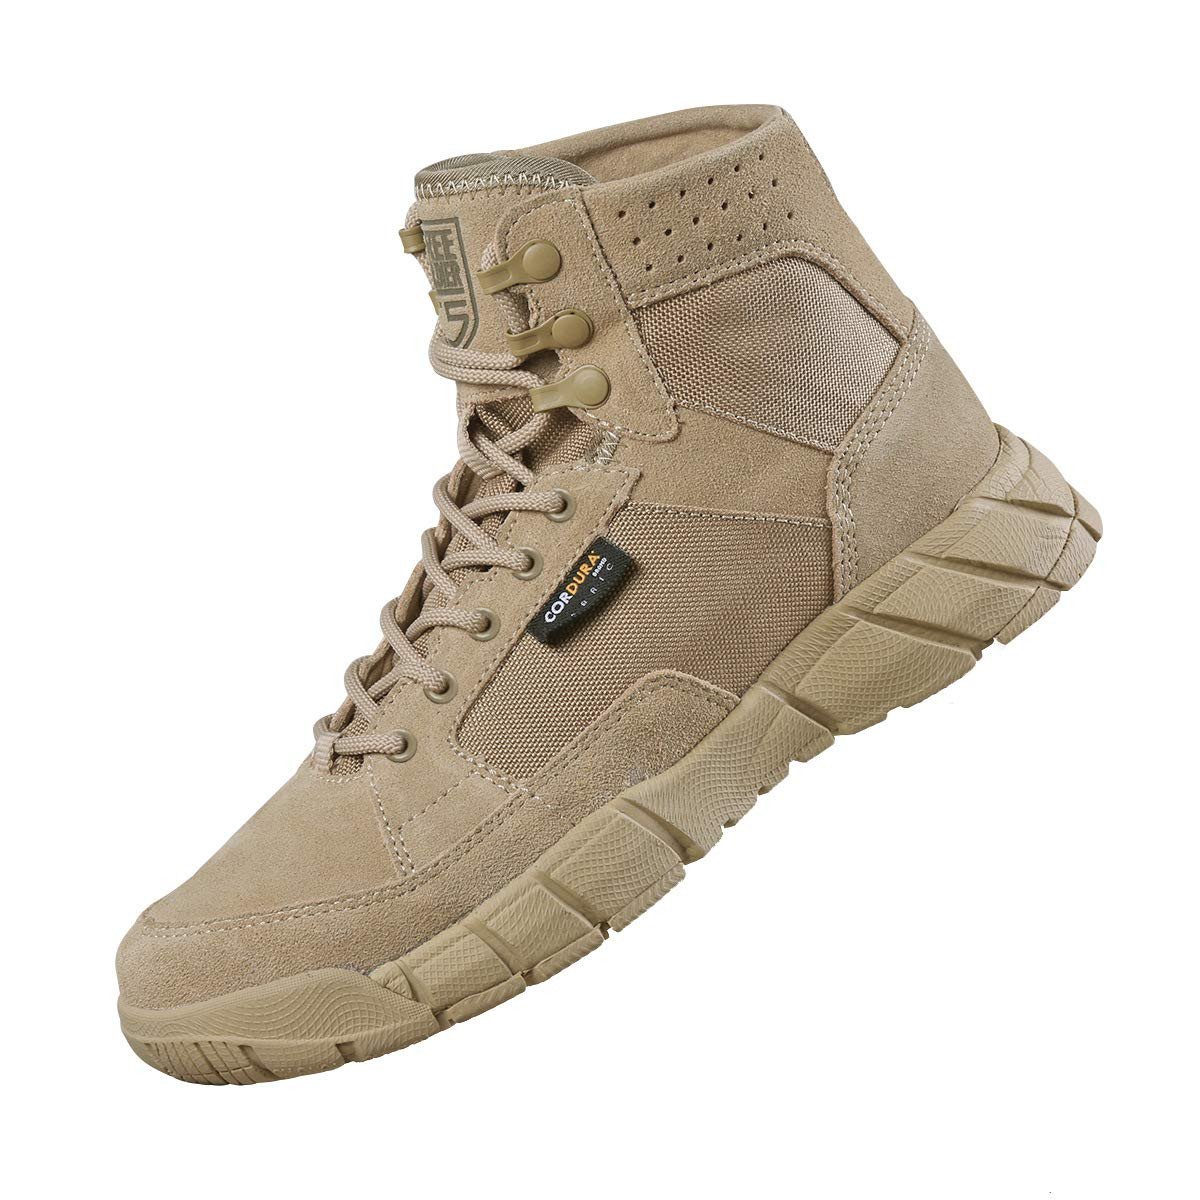 FREE SOLDIER Men's Tactical Boots 6 Inches Summer Lightweight Breathable Desert Boots with Thin Durable Fabric (Tan, 12) by FREE SOLDIER